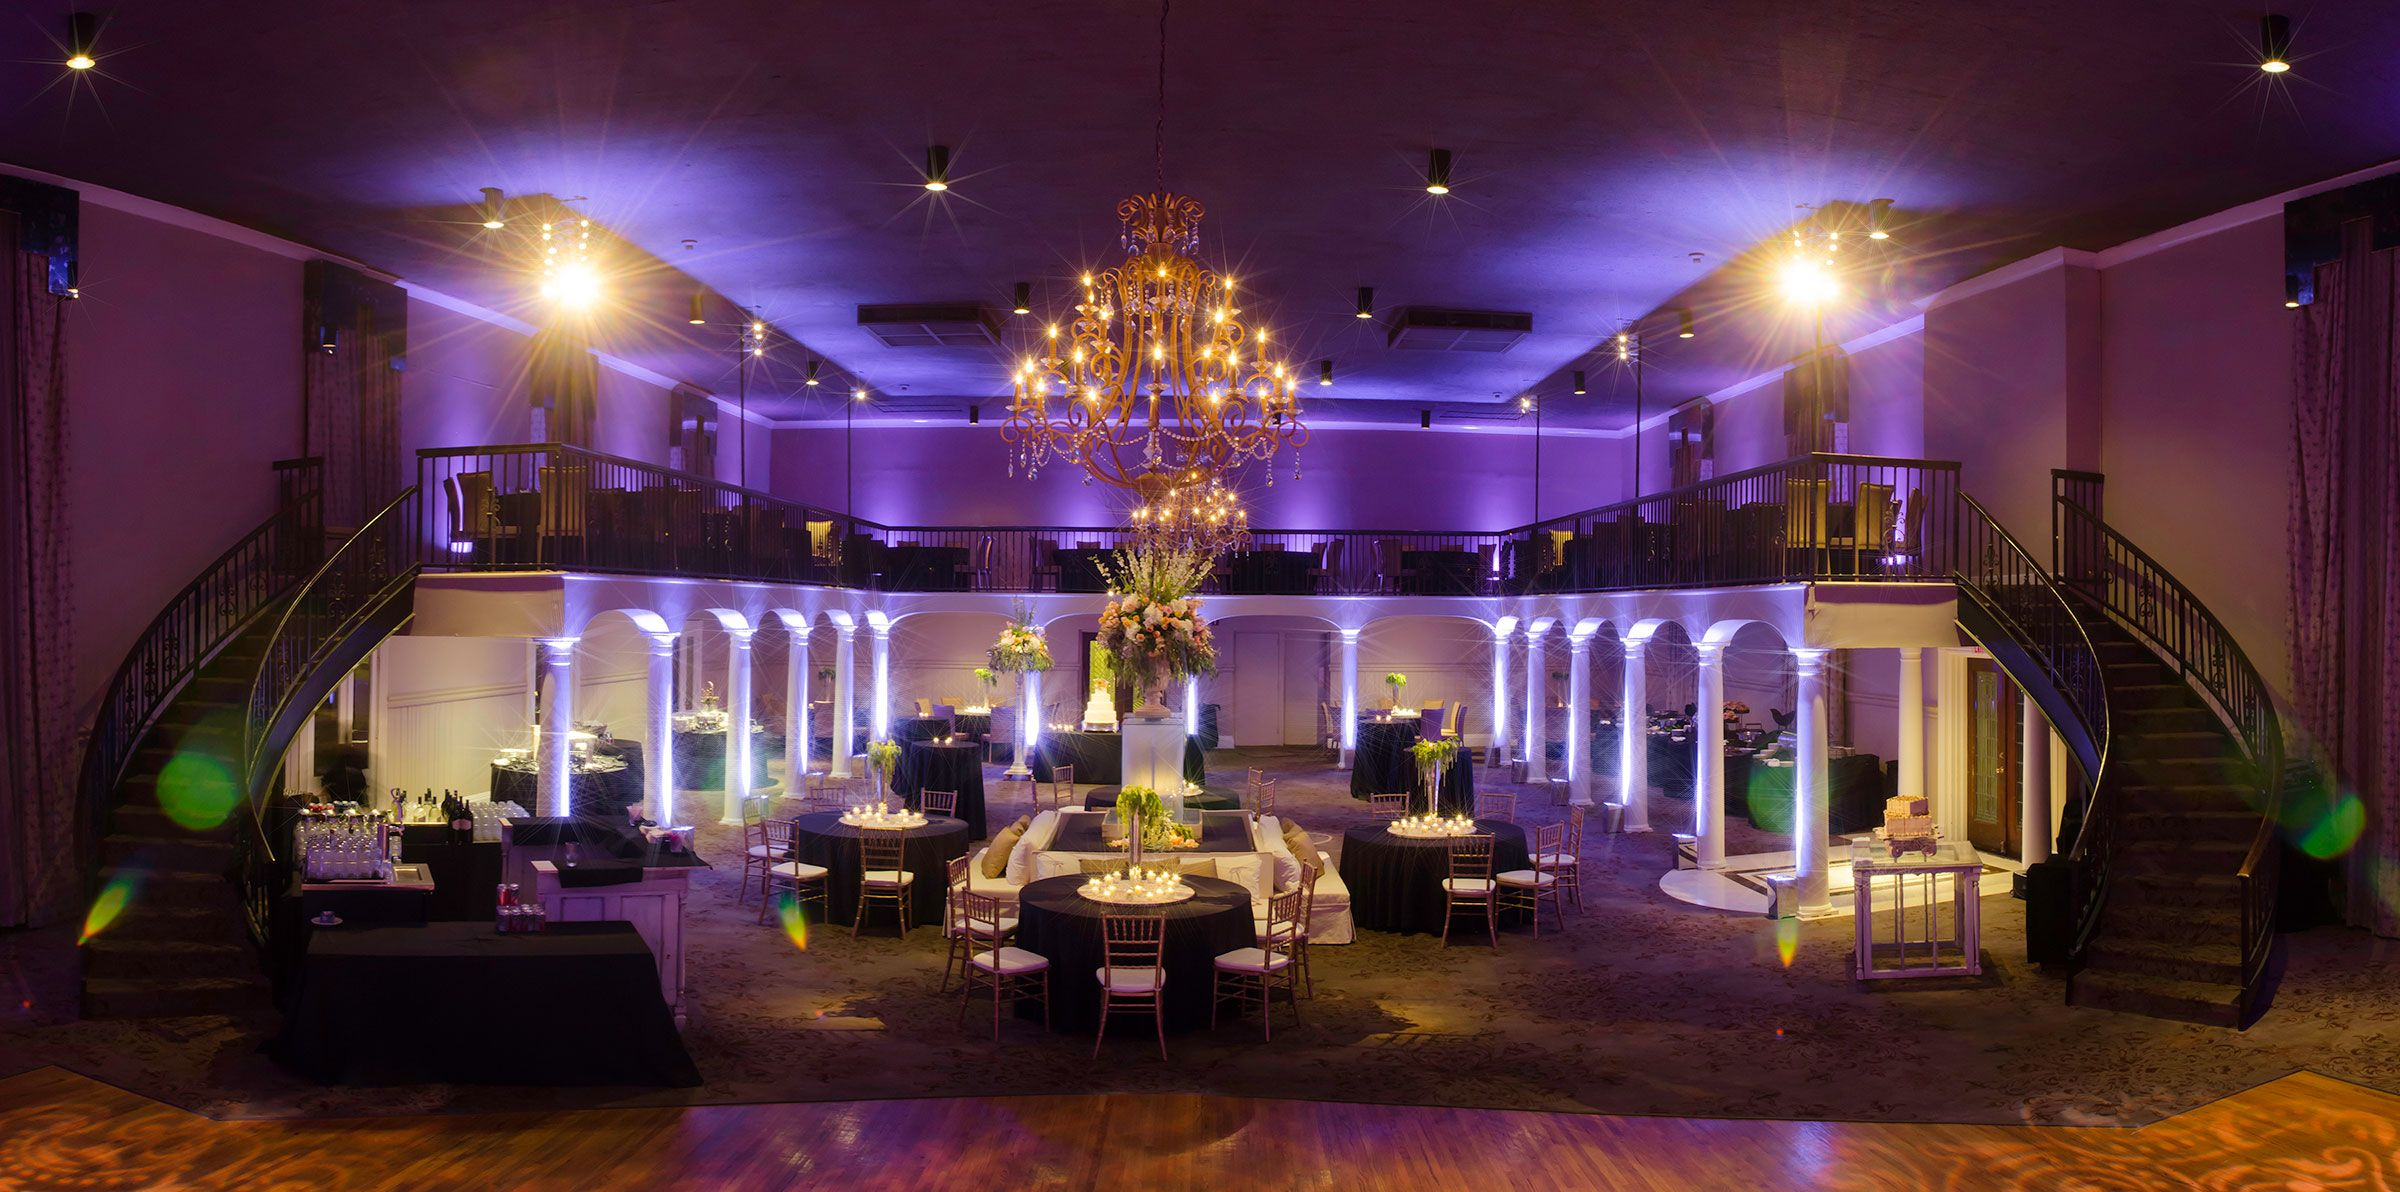 The Old Capitol Inn Is Located In Heart Of Downtown Jackson This Designer Boutique Hotel Perfect Place For Your Meeting Or Special Gathering